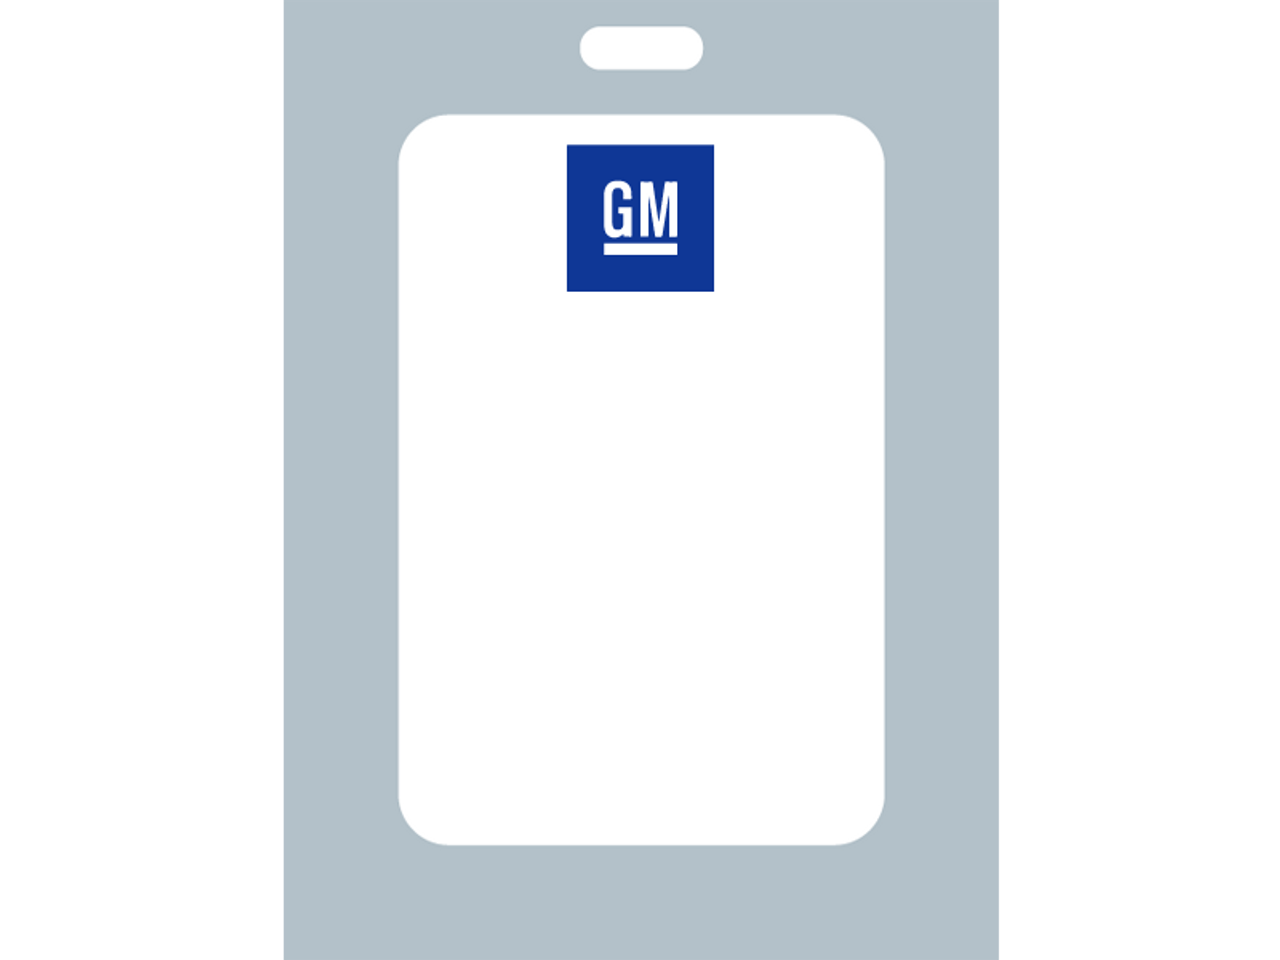 GM branded oil change labels are the perfect solution for your GM dealer who wants to create repeat revenue for your service department.